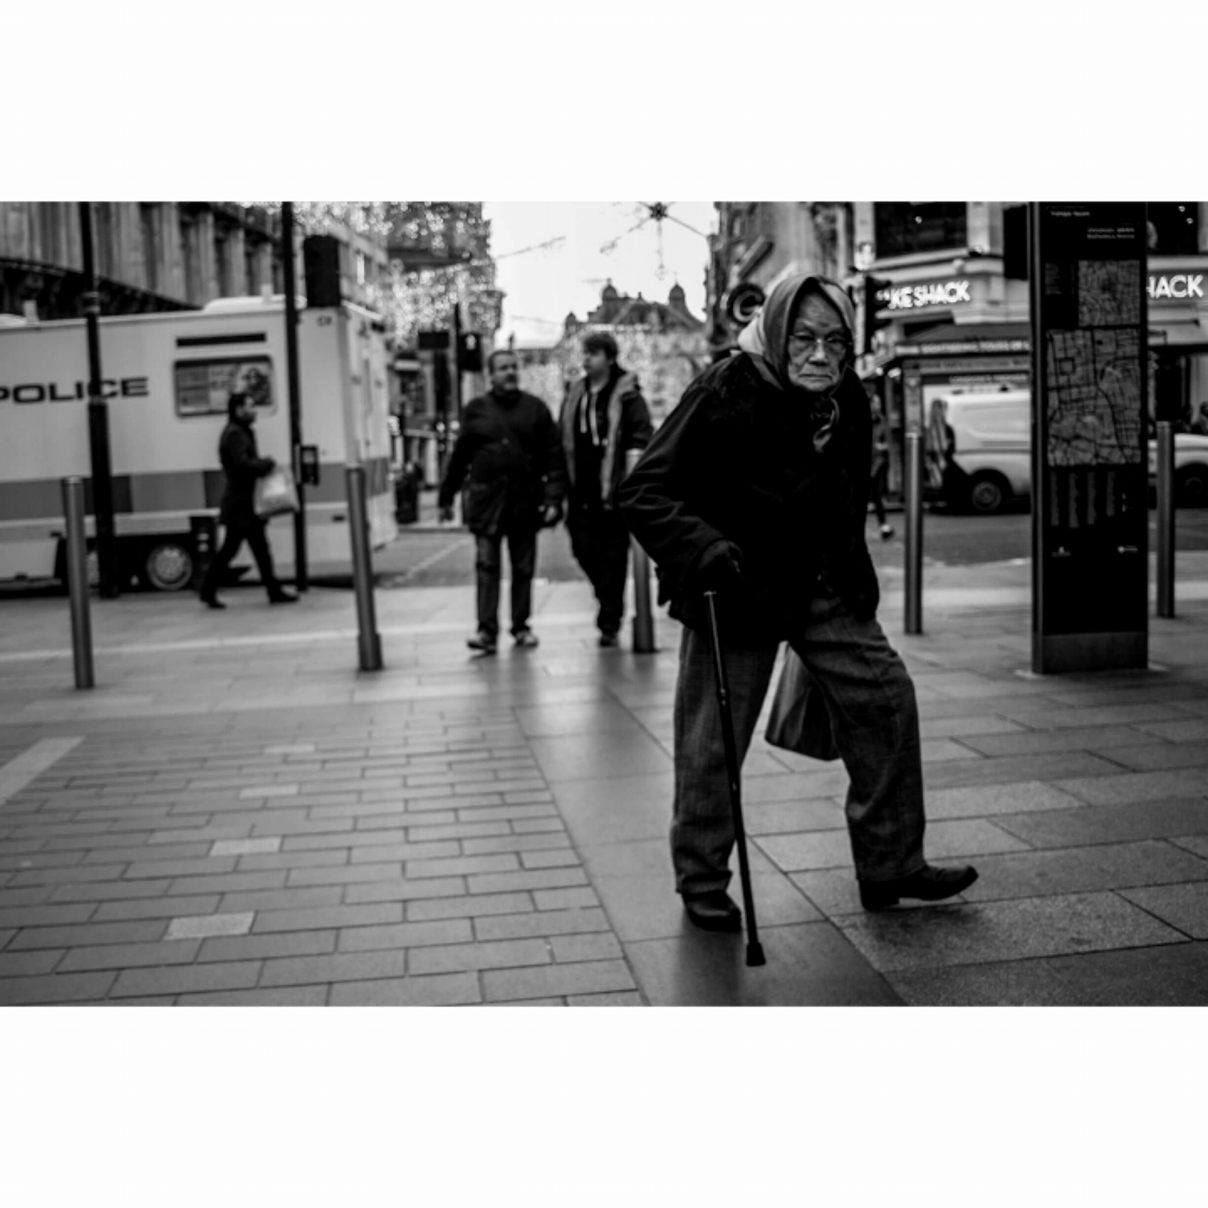 Asian old lady in Leicester Square, London - January 2017